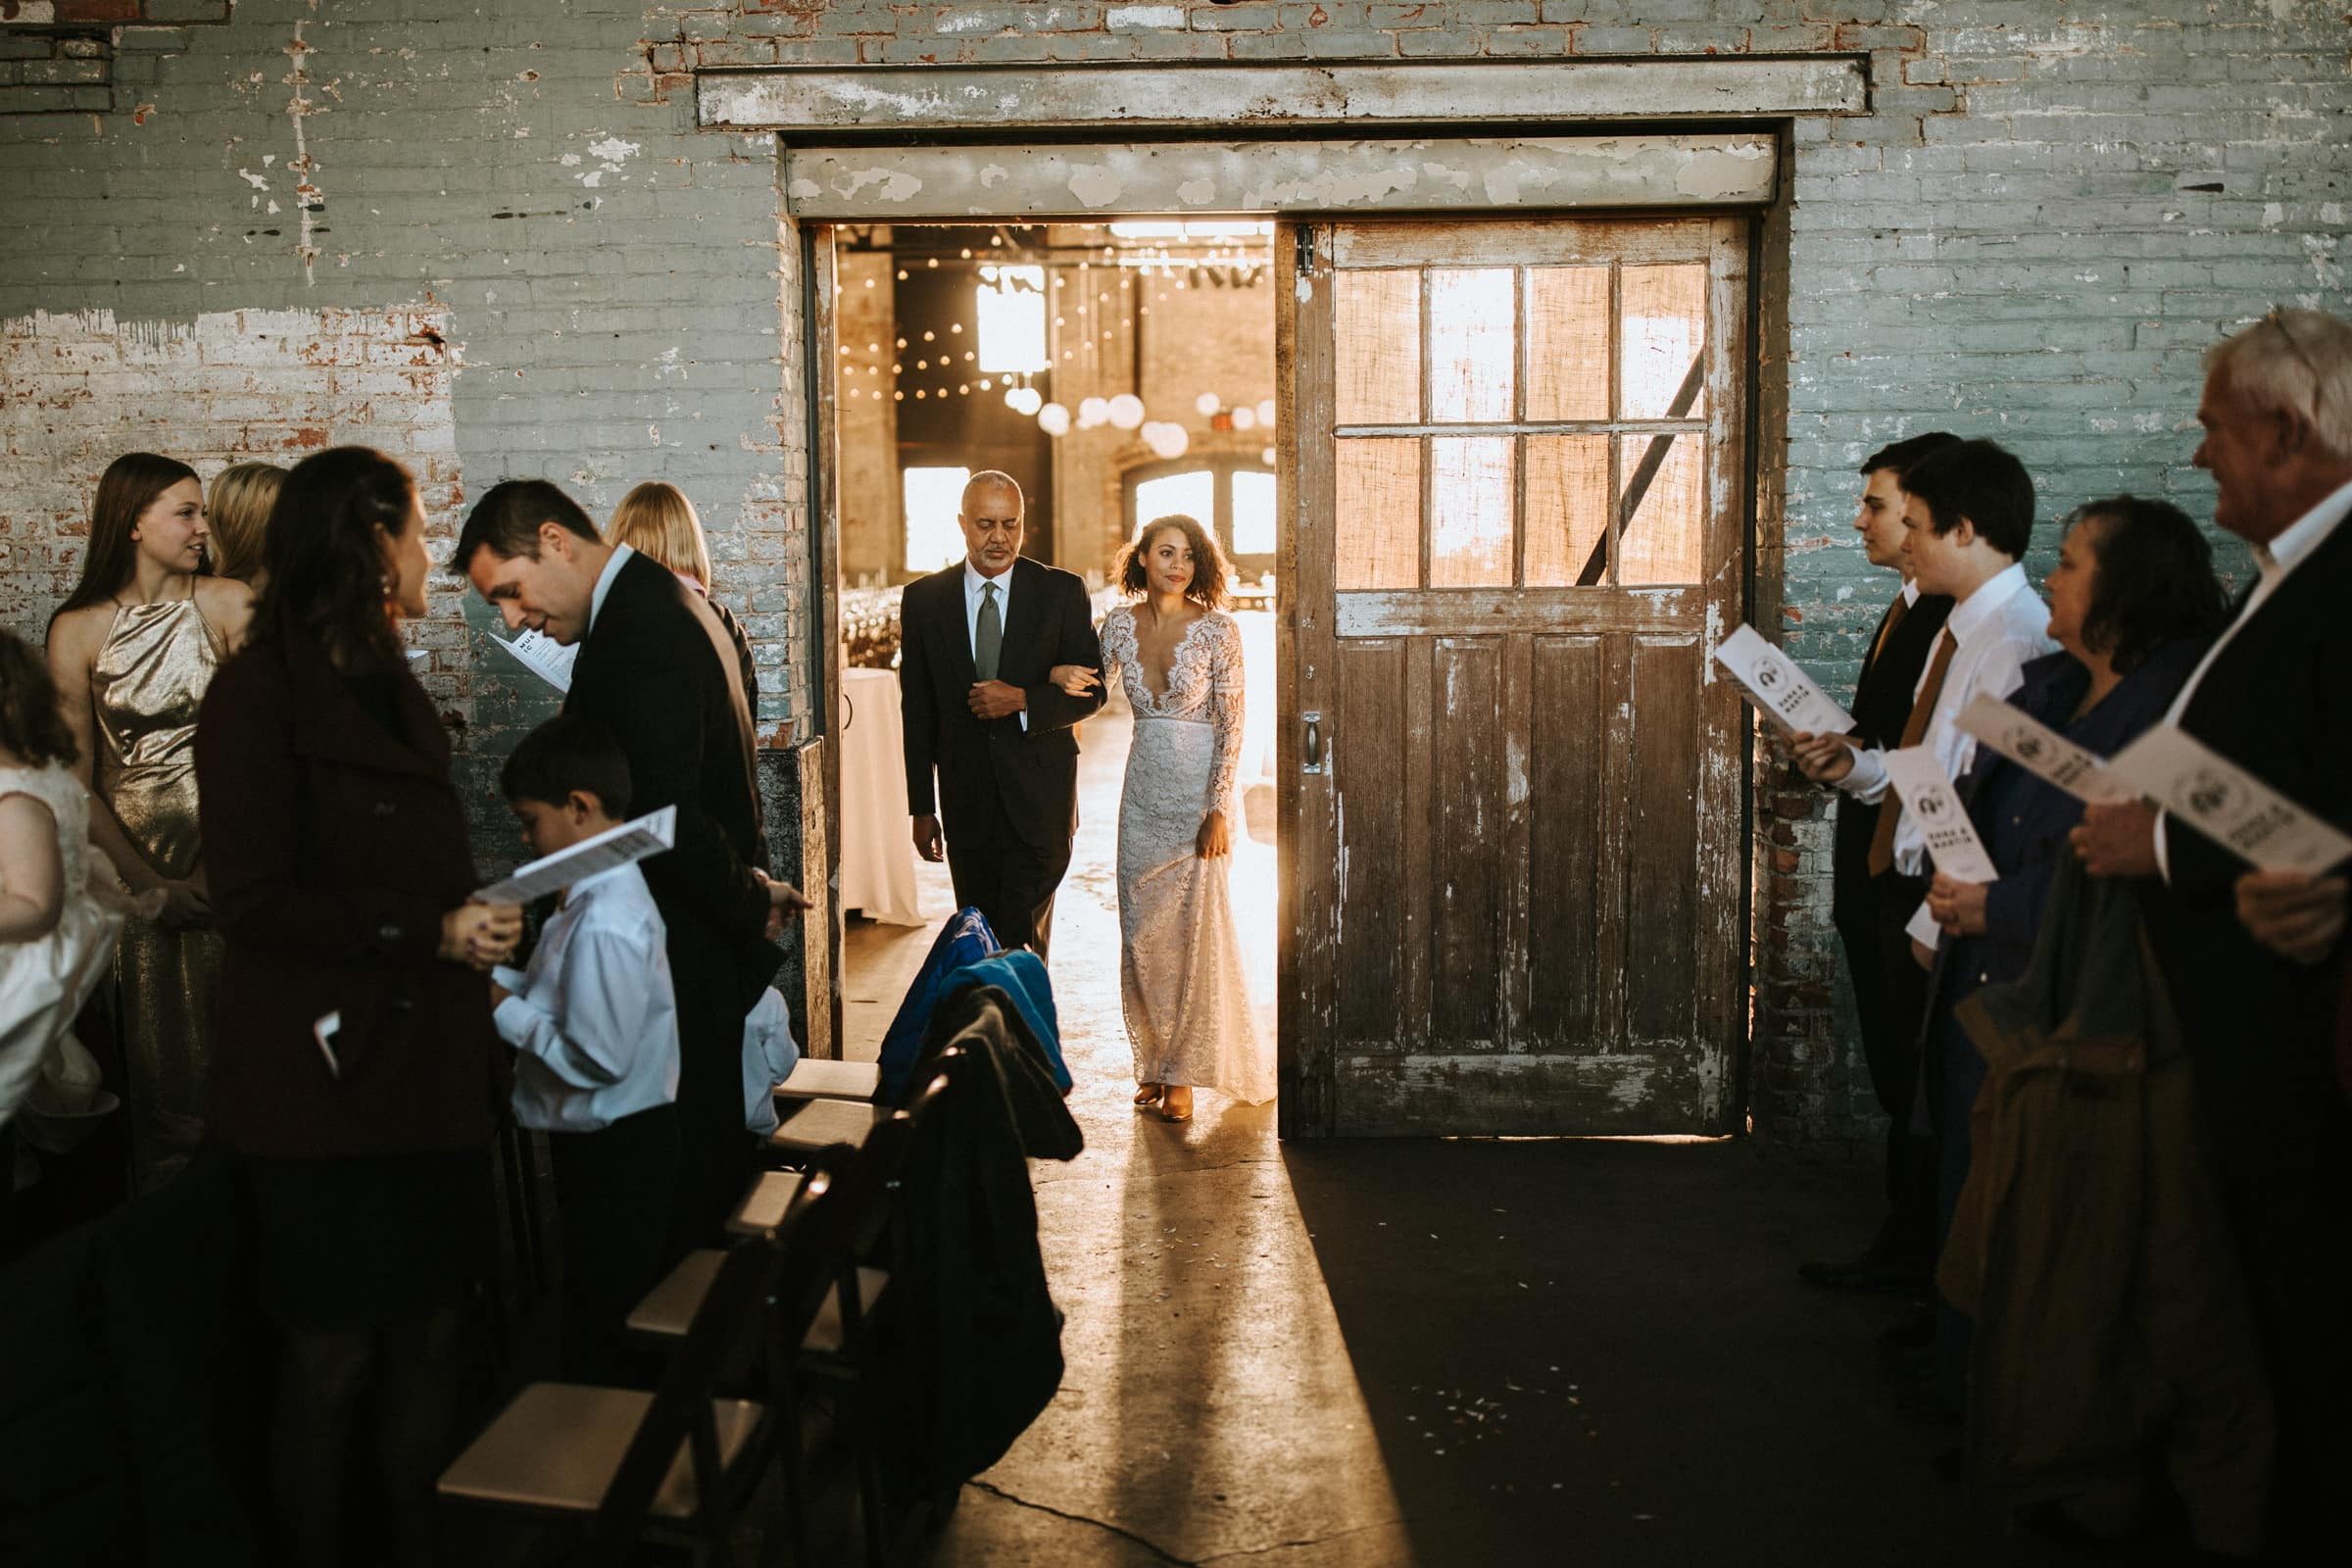 The bride and her father are entering the wedding venue.